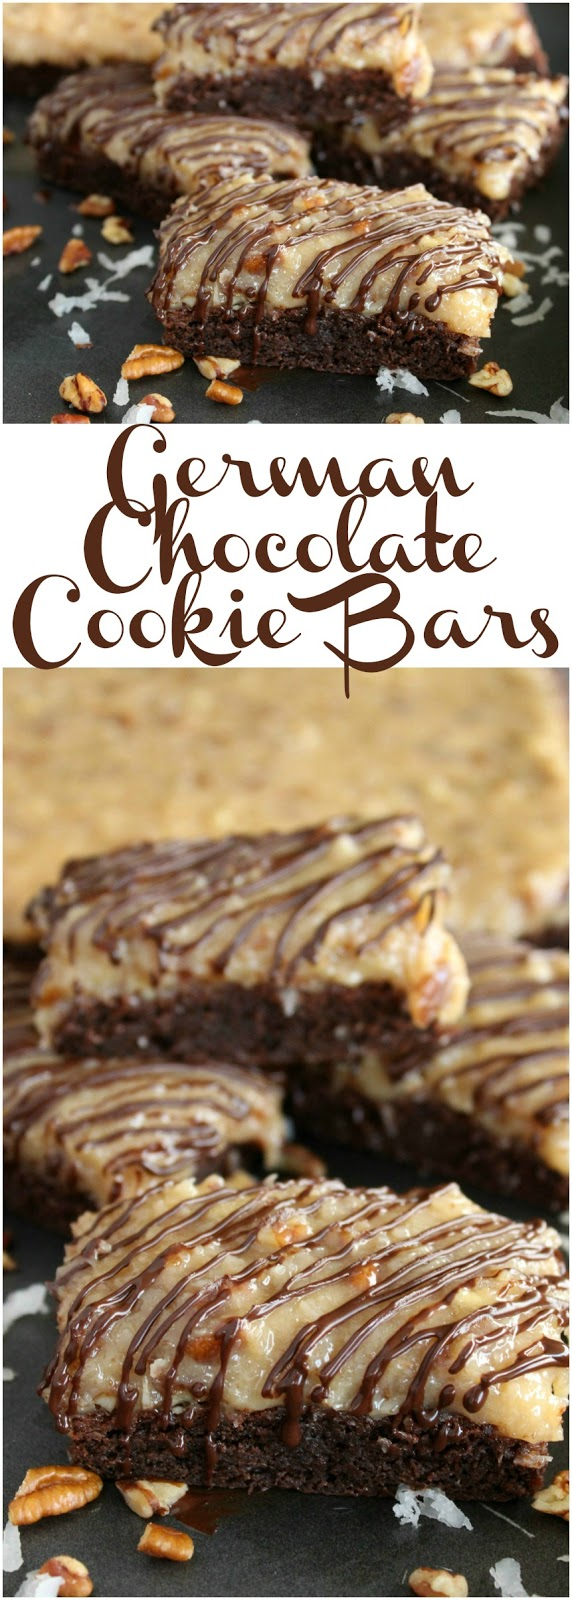 German Chocolate Cookie Bars by LoveandConfections.com